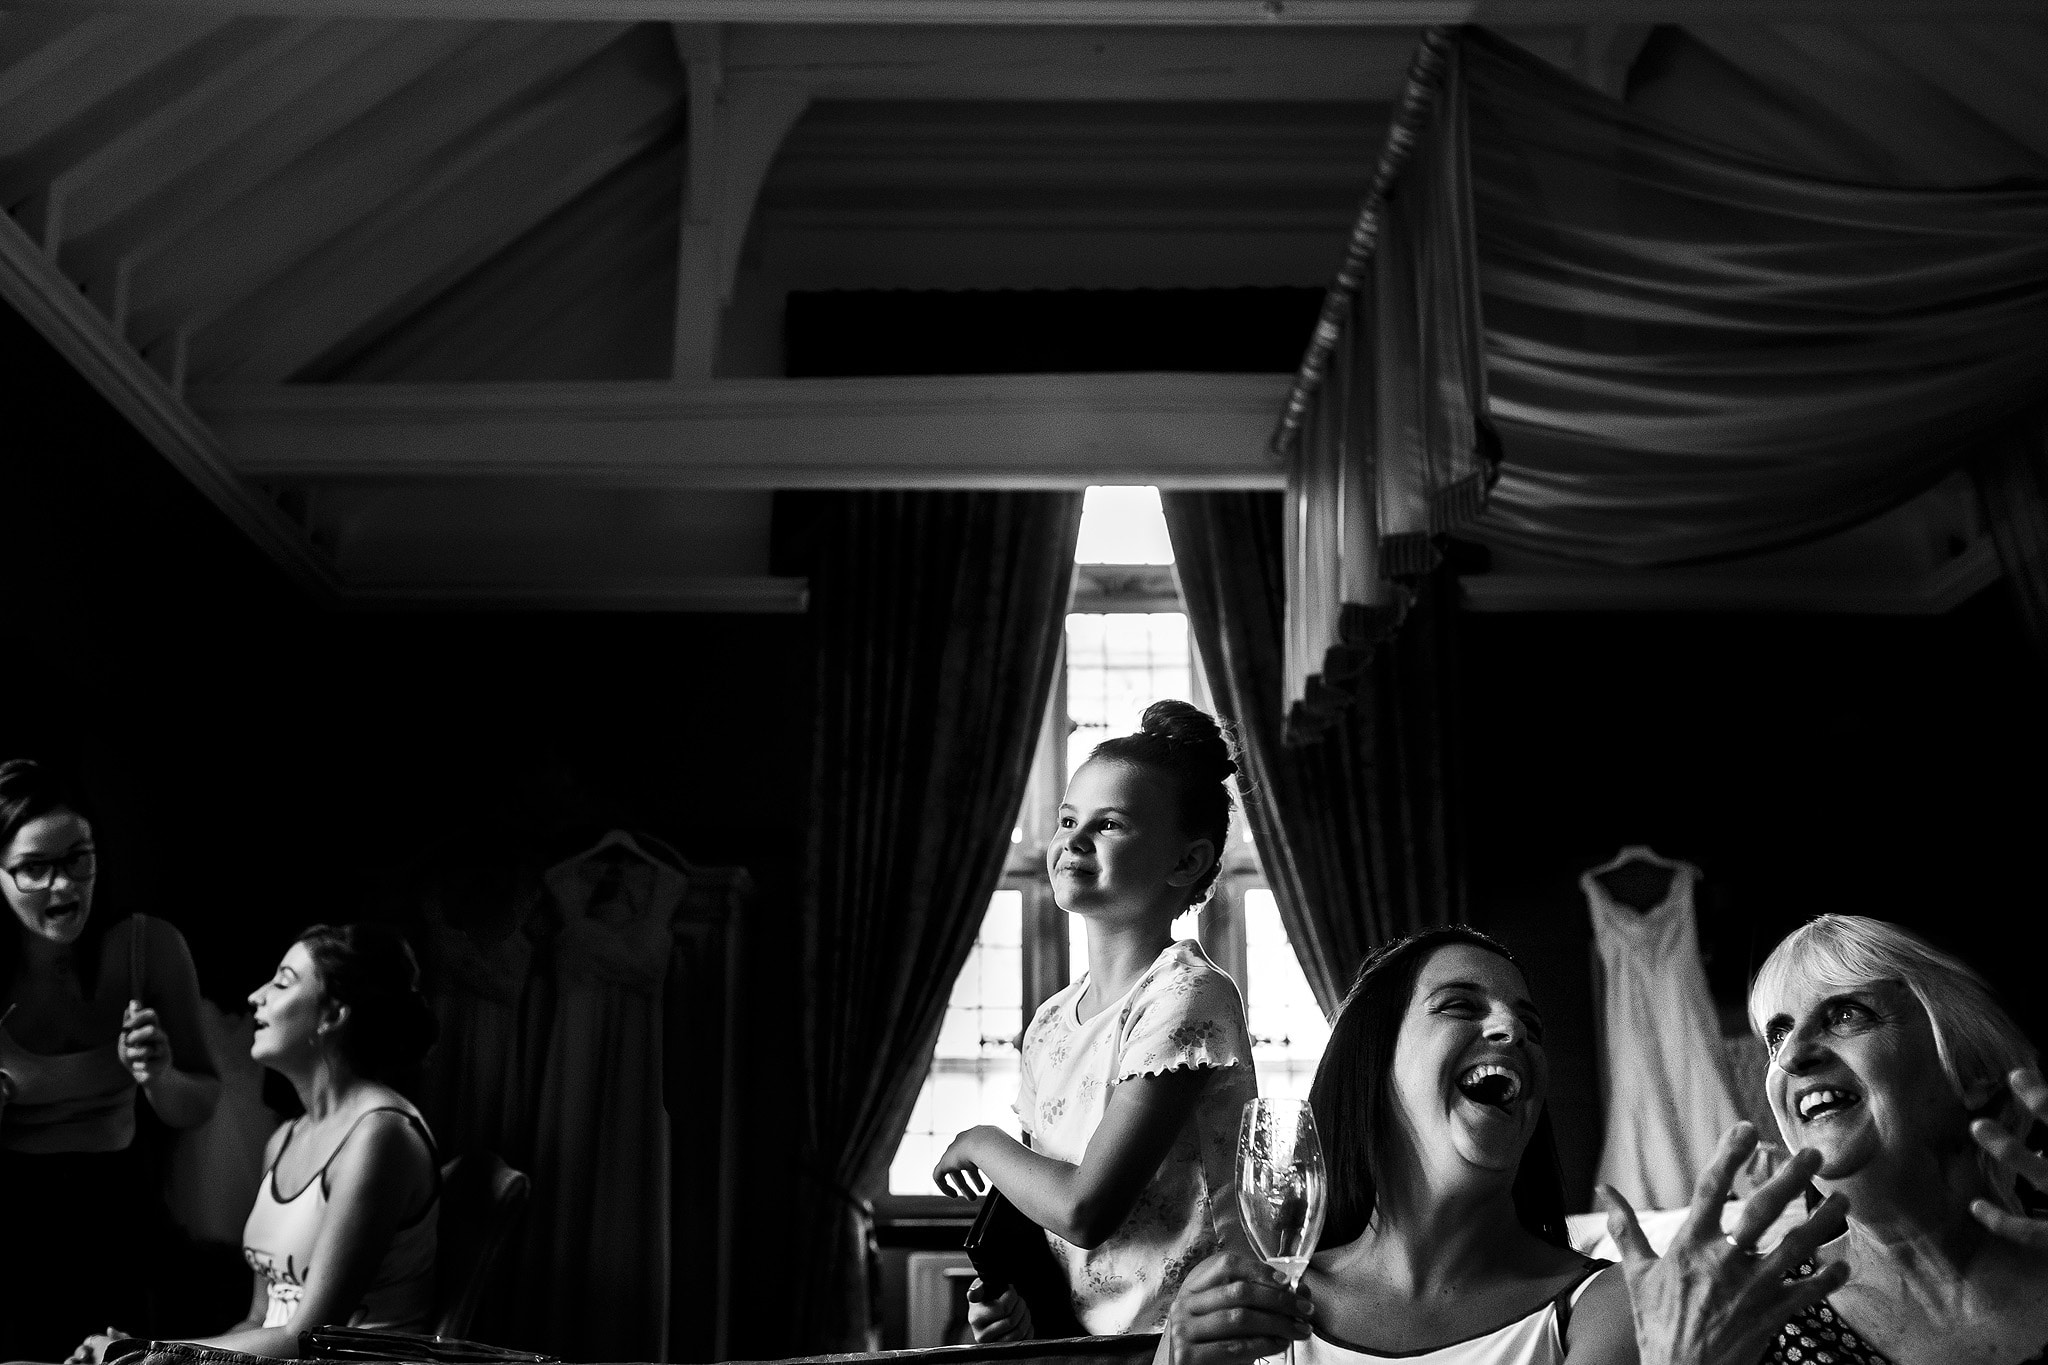 Black and white image of flower girl perfectly framed with wedding dress hanging in the background